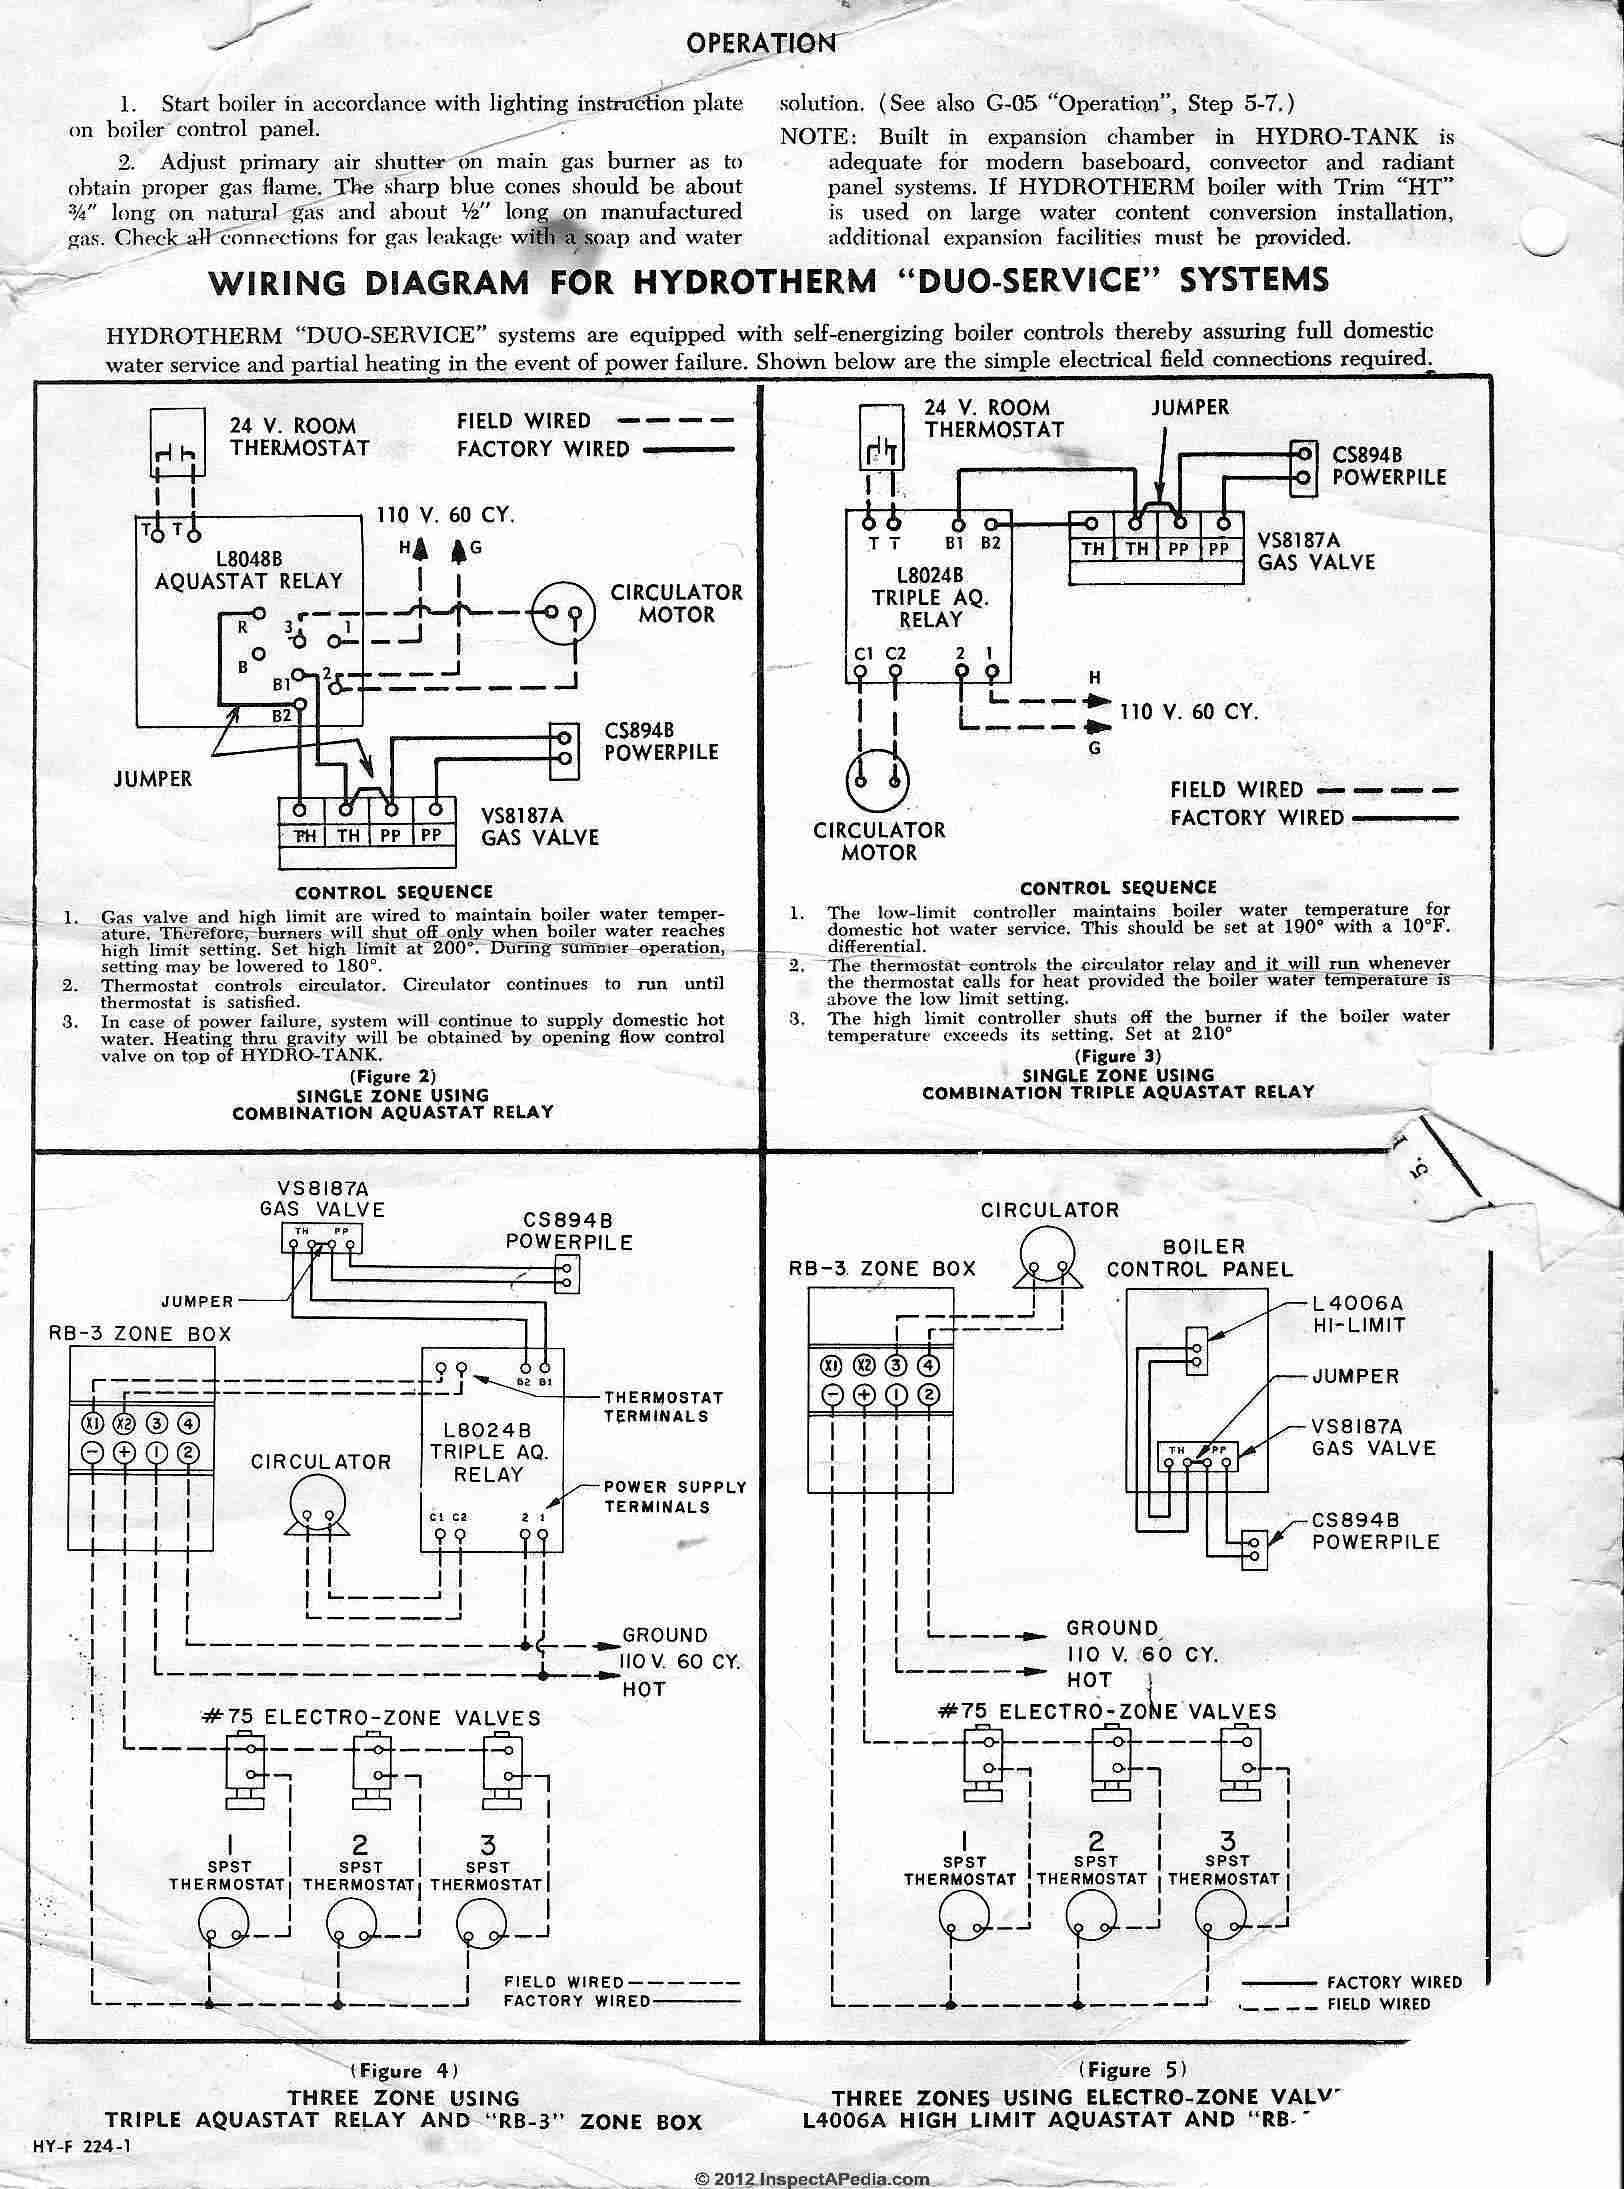 L8024B_Aquastat_0422_DJFcs heating boiler aquastat control diagnosis, troubleshooting, repair imit boiler thermostat wiring diagram at gsmx.co